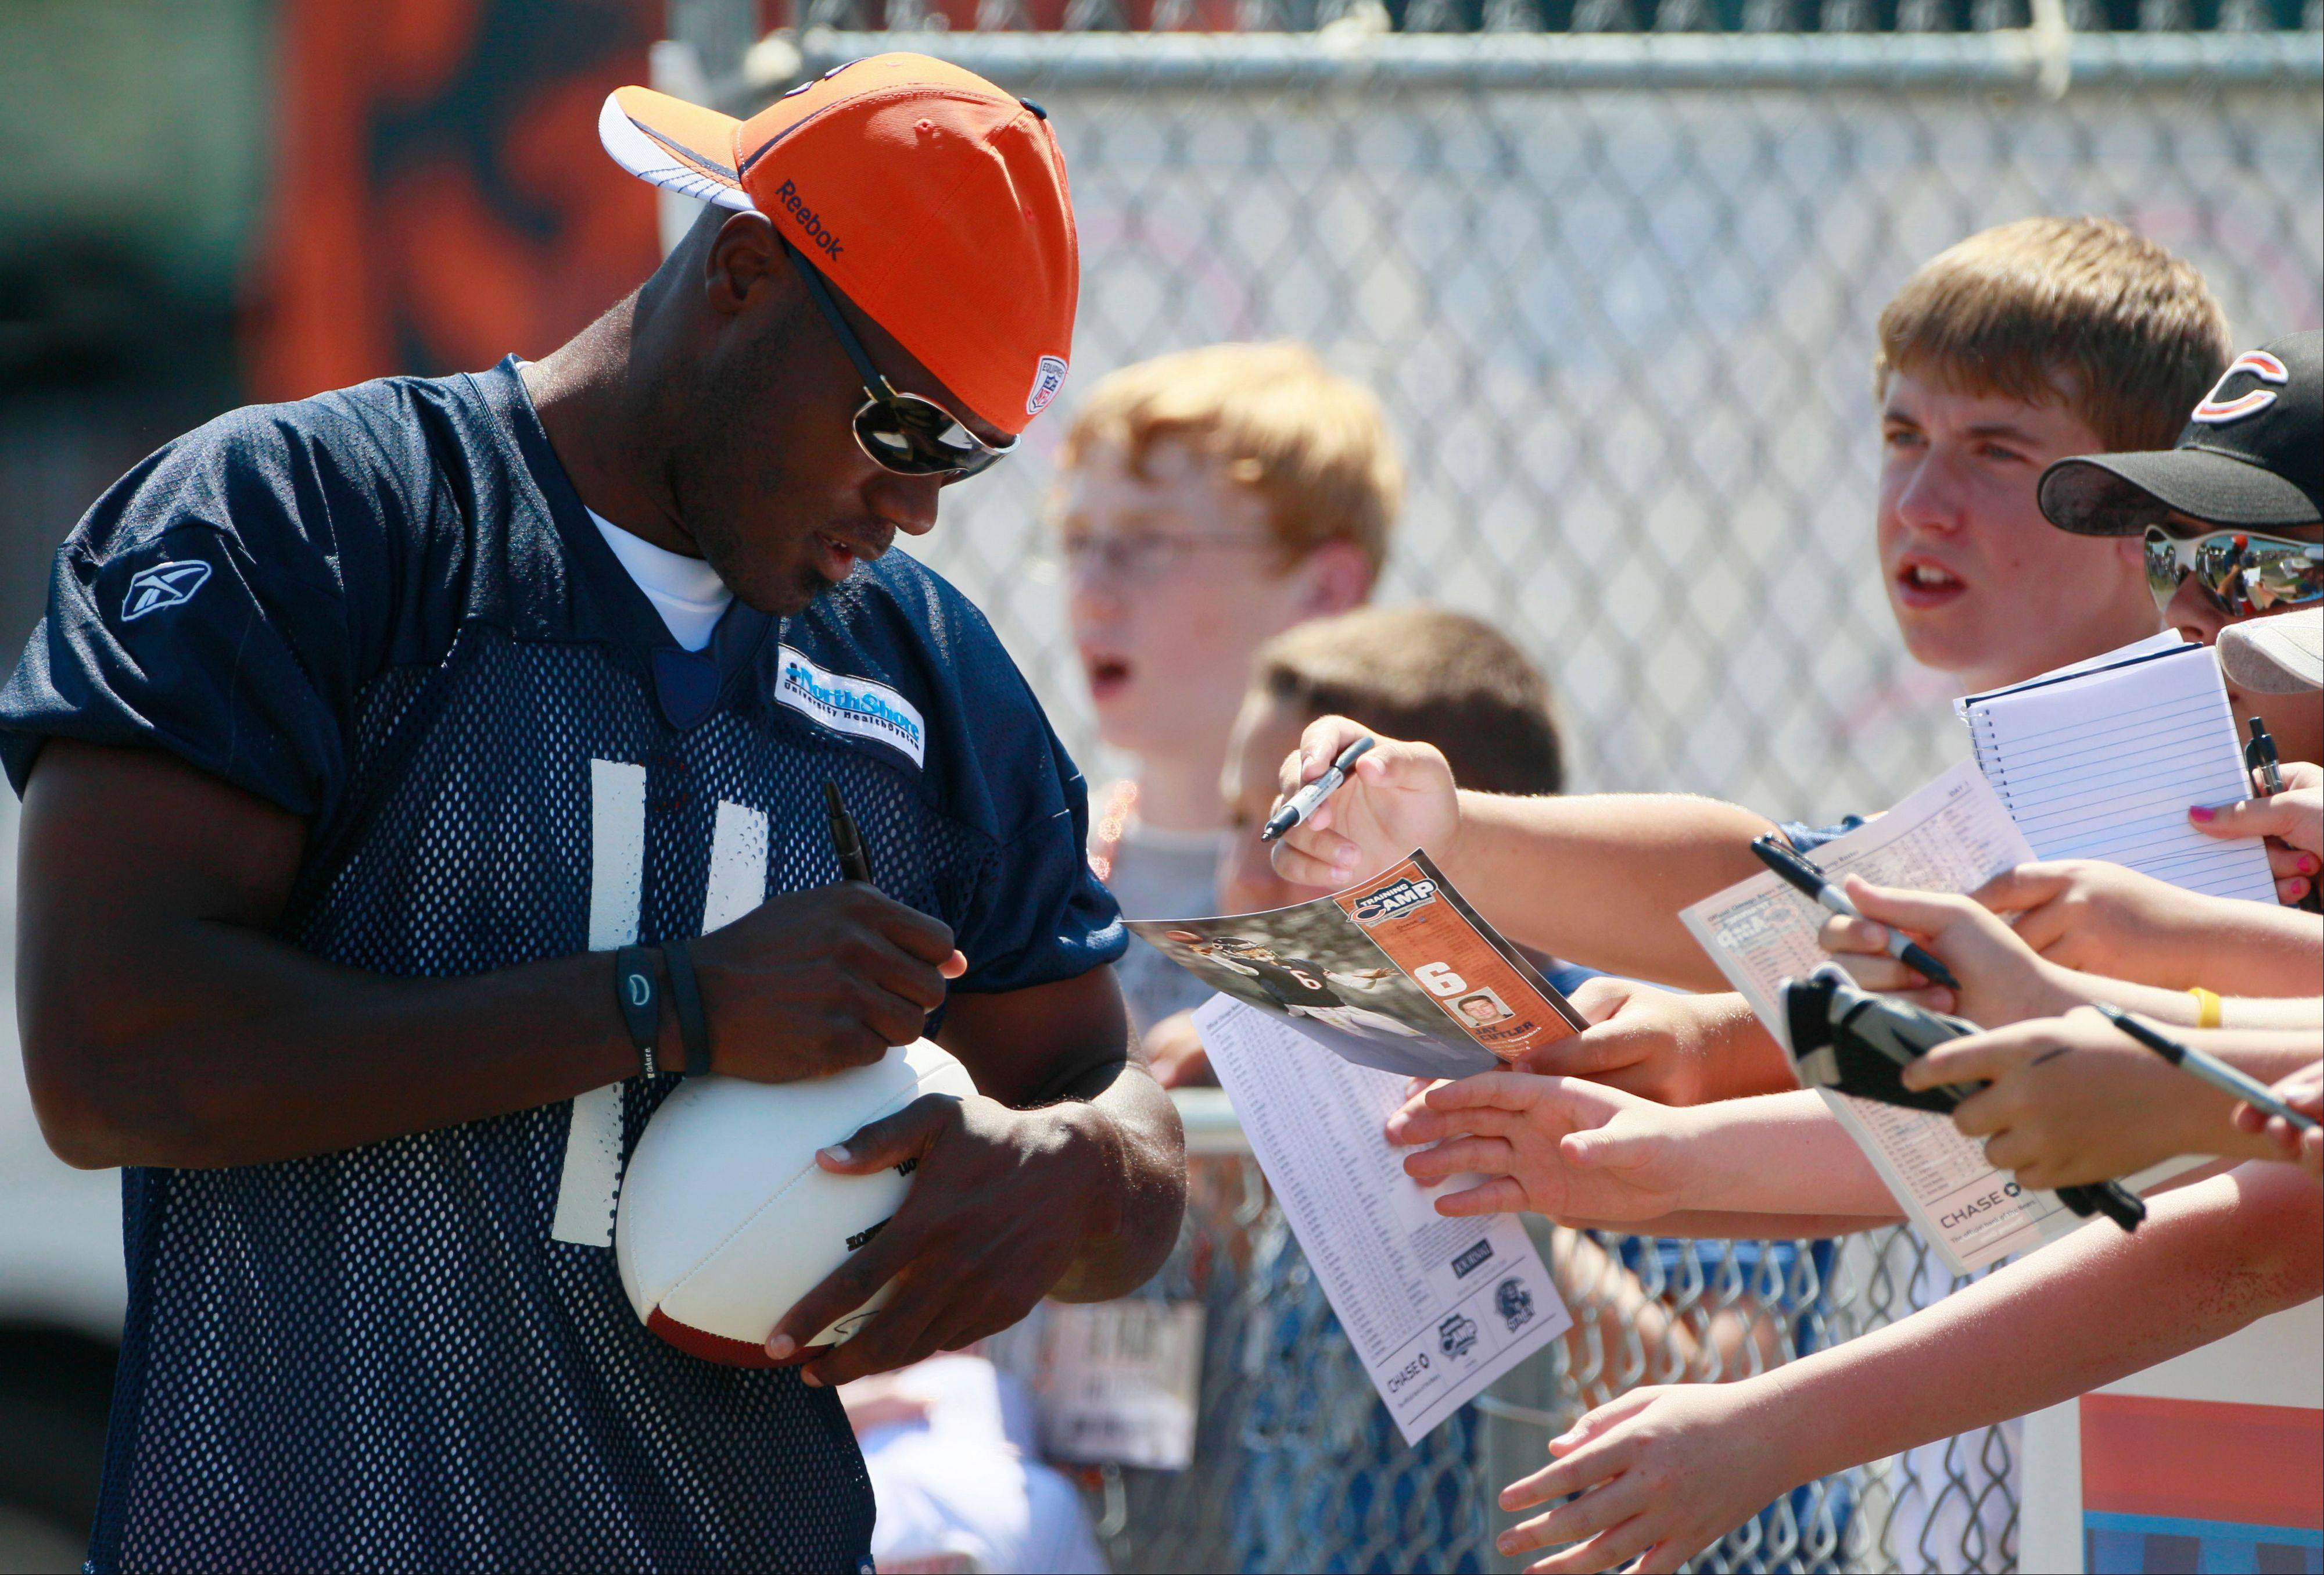 Wide receiver Roy Williams signs autographs as he walks on the field during the first day of training camp Saturday.